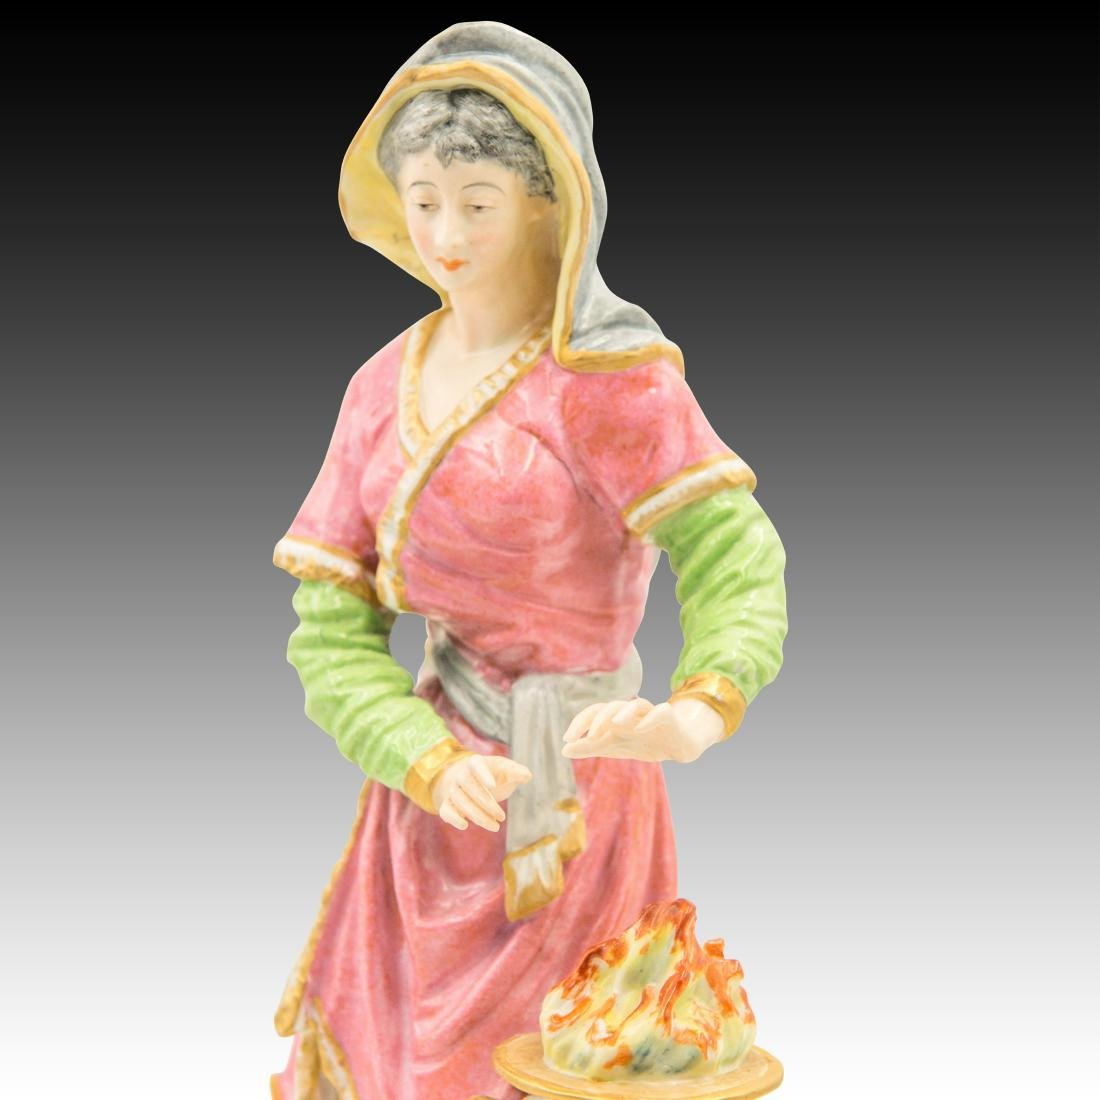 Tall Woman warming her hands by a fire Figurine - 5